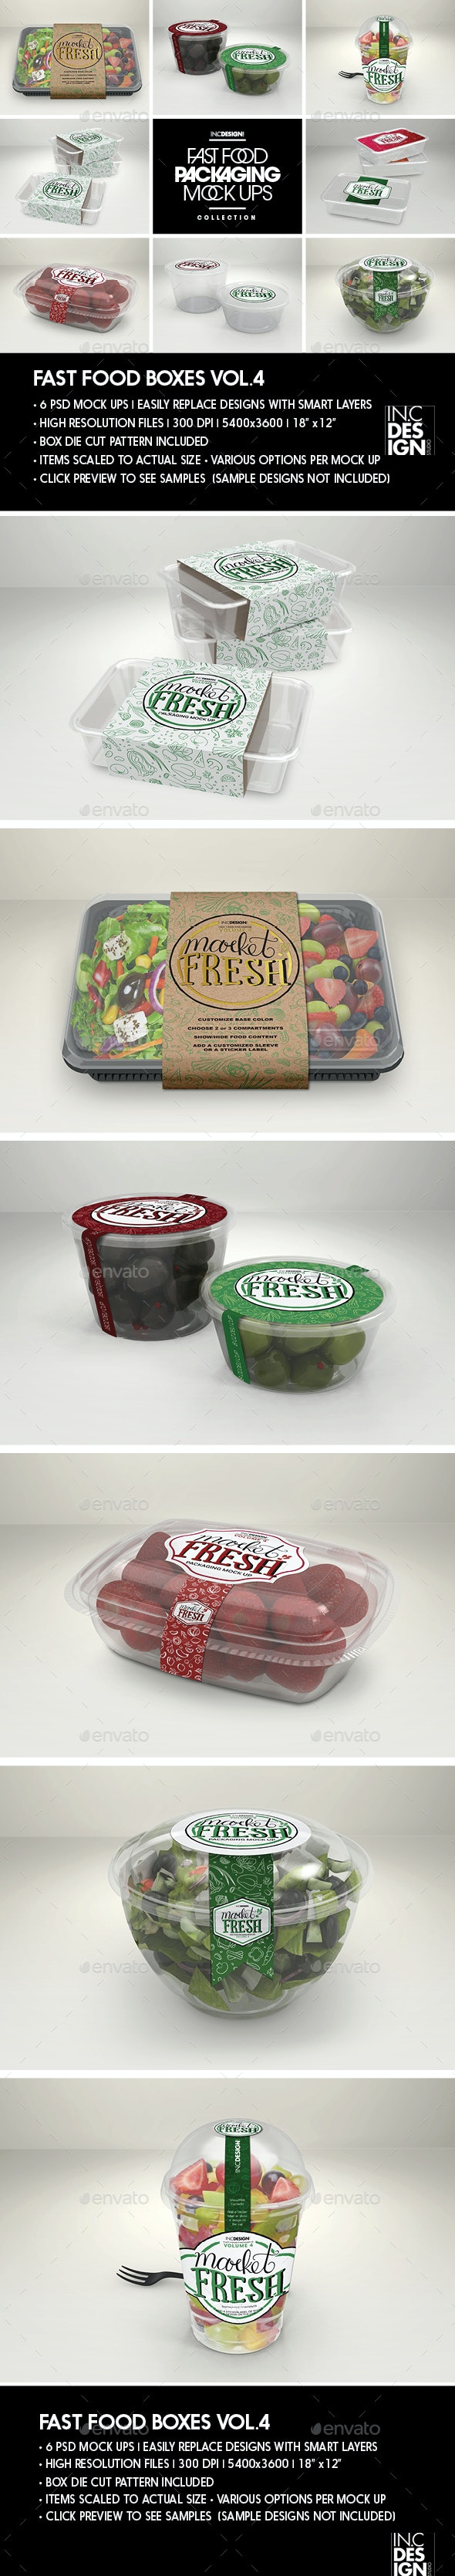 Fast Food Boxes Vol.4: Take Out Packaging Mock Ups - Food and Drink Packaging